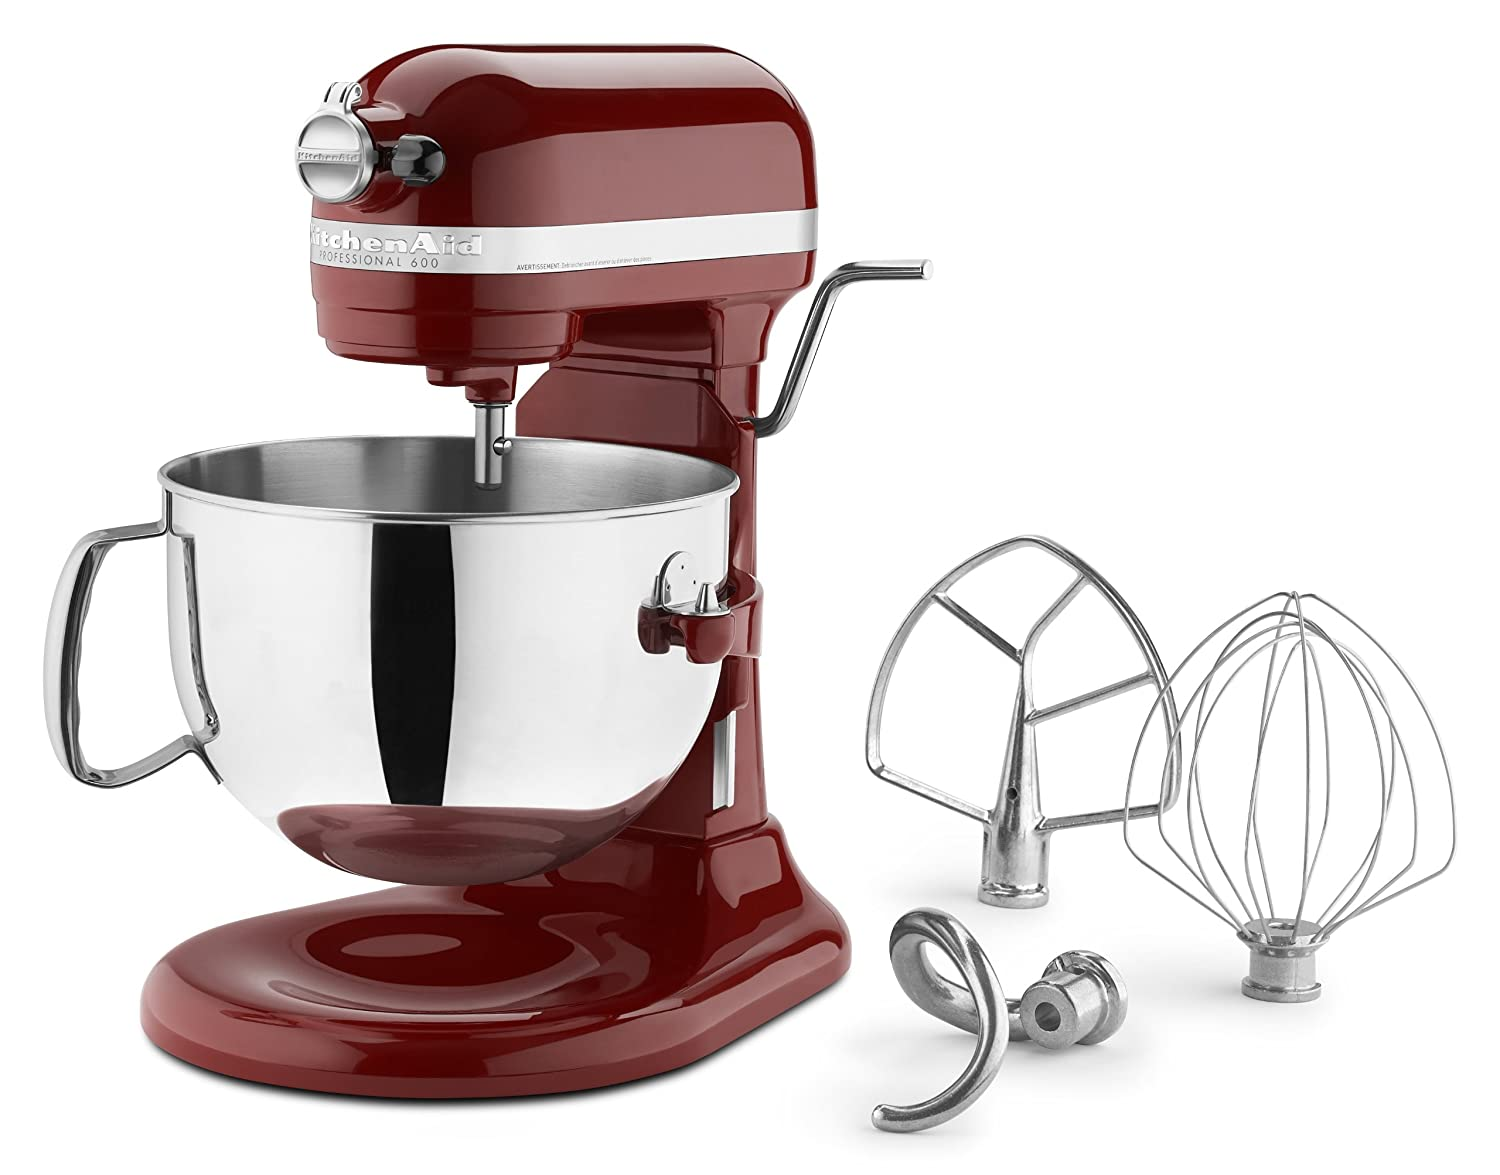 amazoncom kitchenaid kp26m1pgc 600 series 6quart stand mixer cinnamon gloss electric stand mixers kitchen u0026 dining - Kitchenaid Mixer Best Price